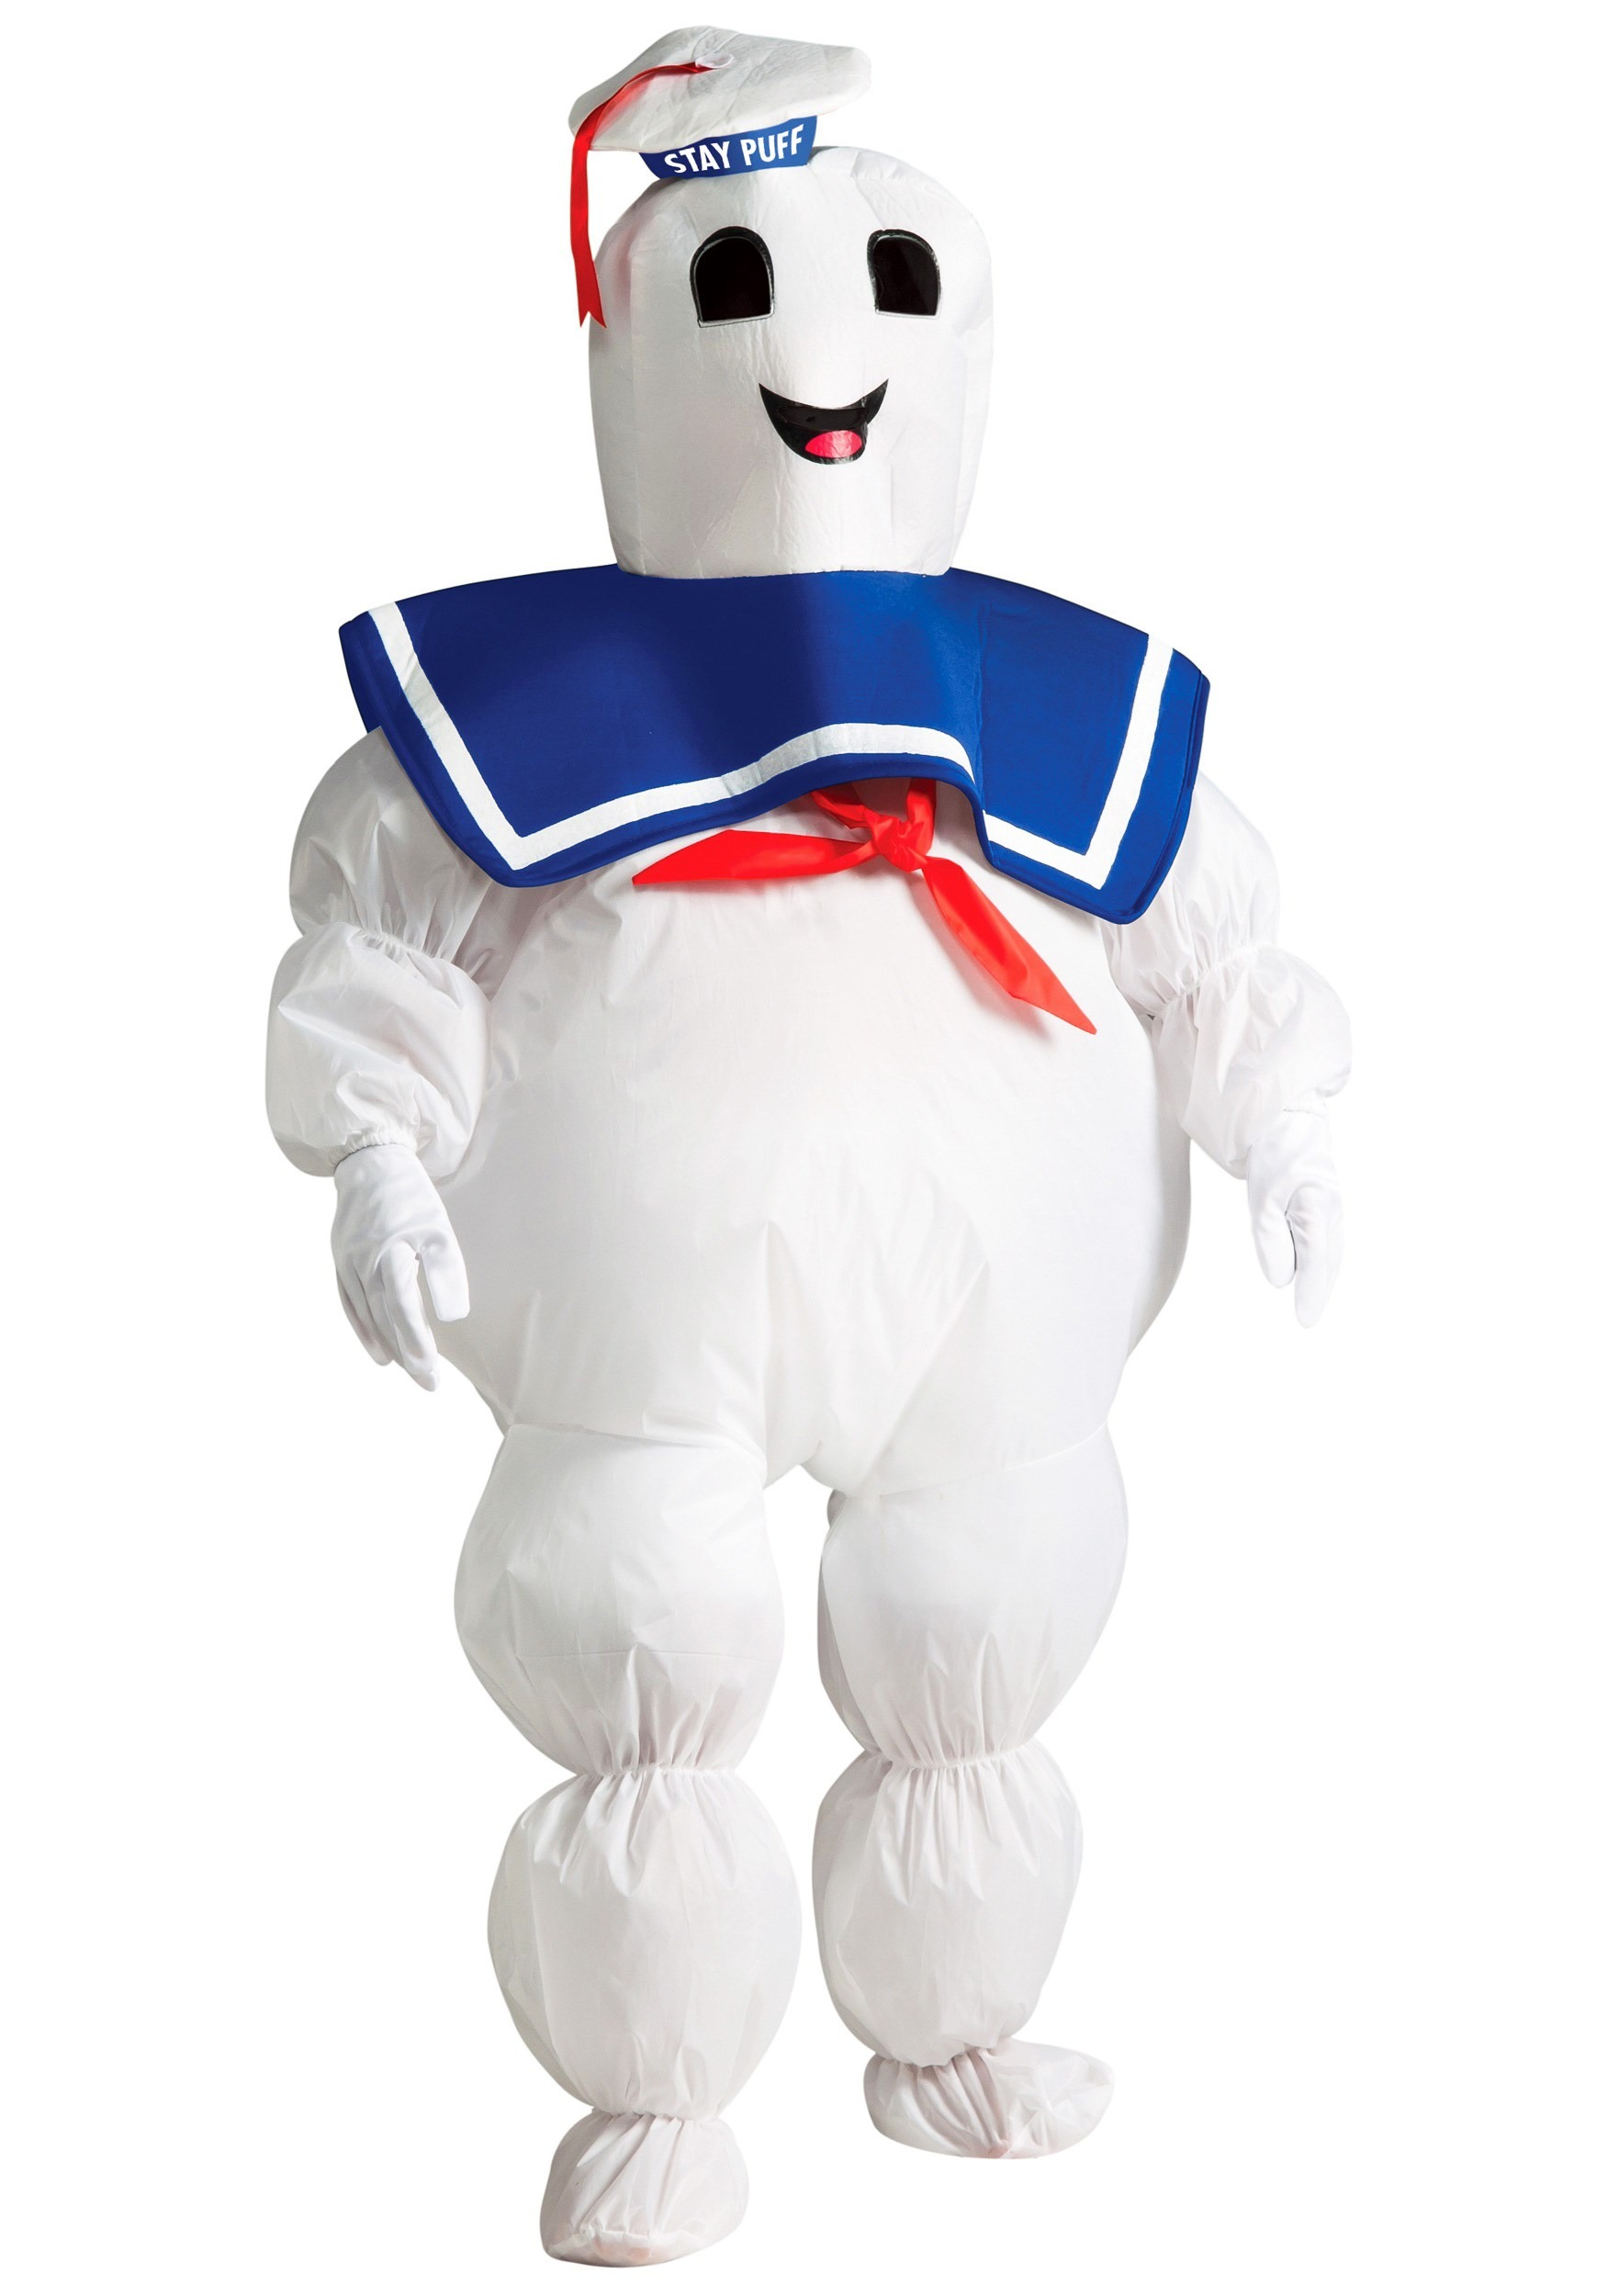 Stay Puft Kids Costume  sc 1 st  Halloween Costume & Stay Puft Kids Costume - Ghostbuster Villain Costumes for Kids